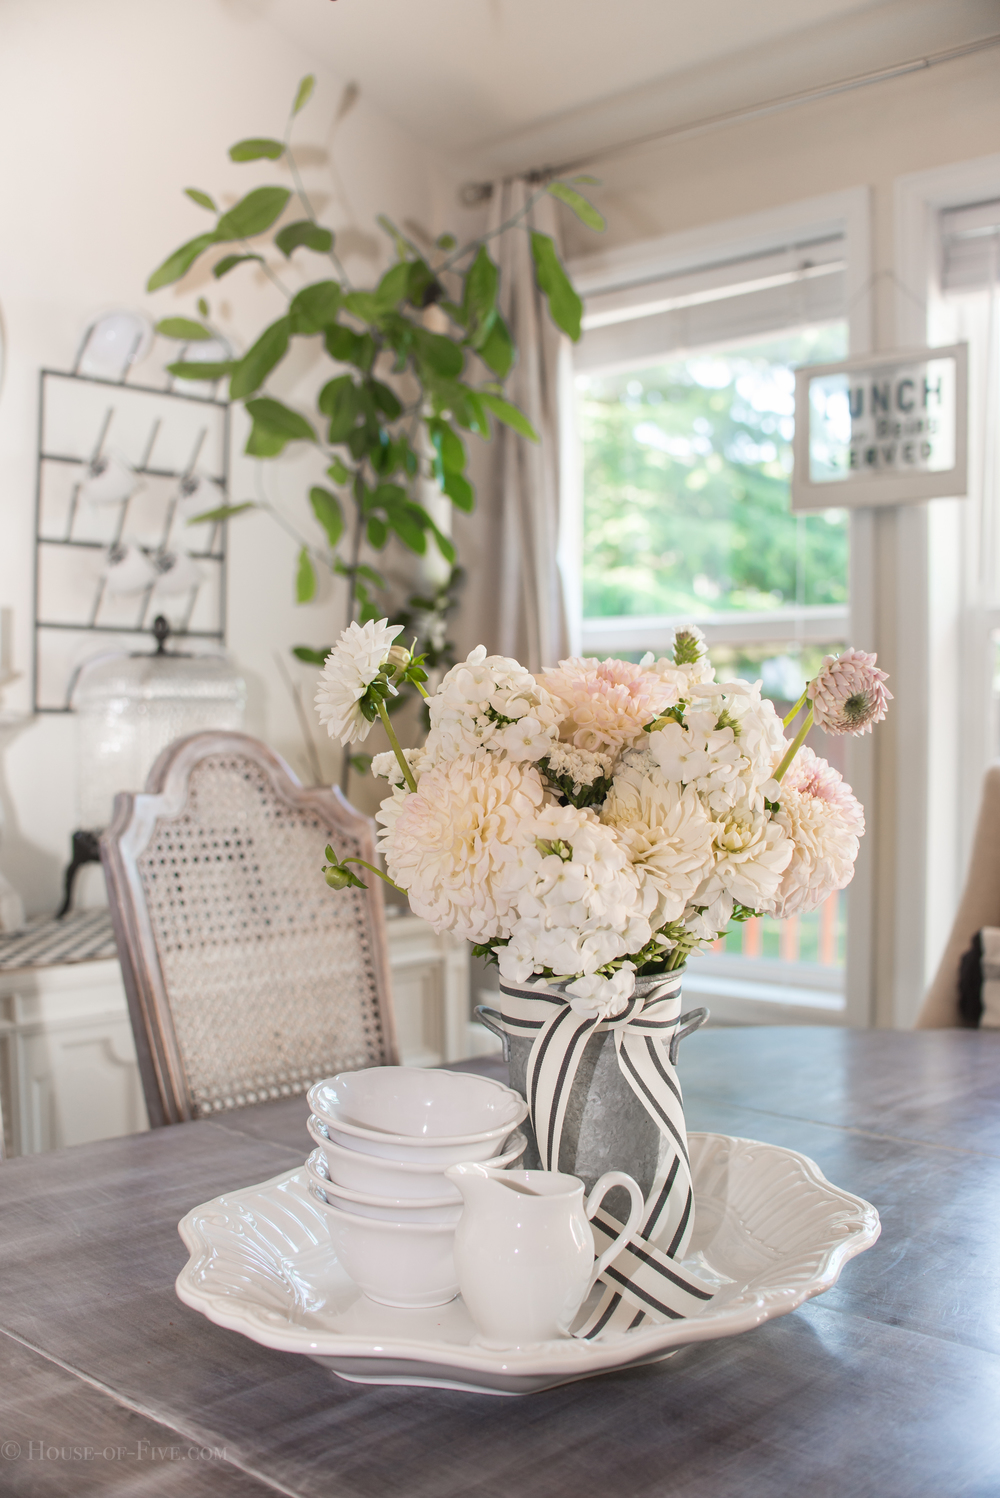 Mixing old and new decor - Dining Room - House of Five Blog